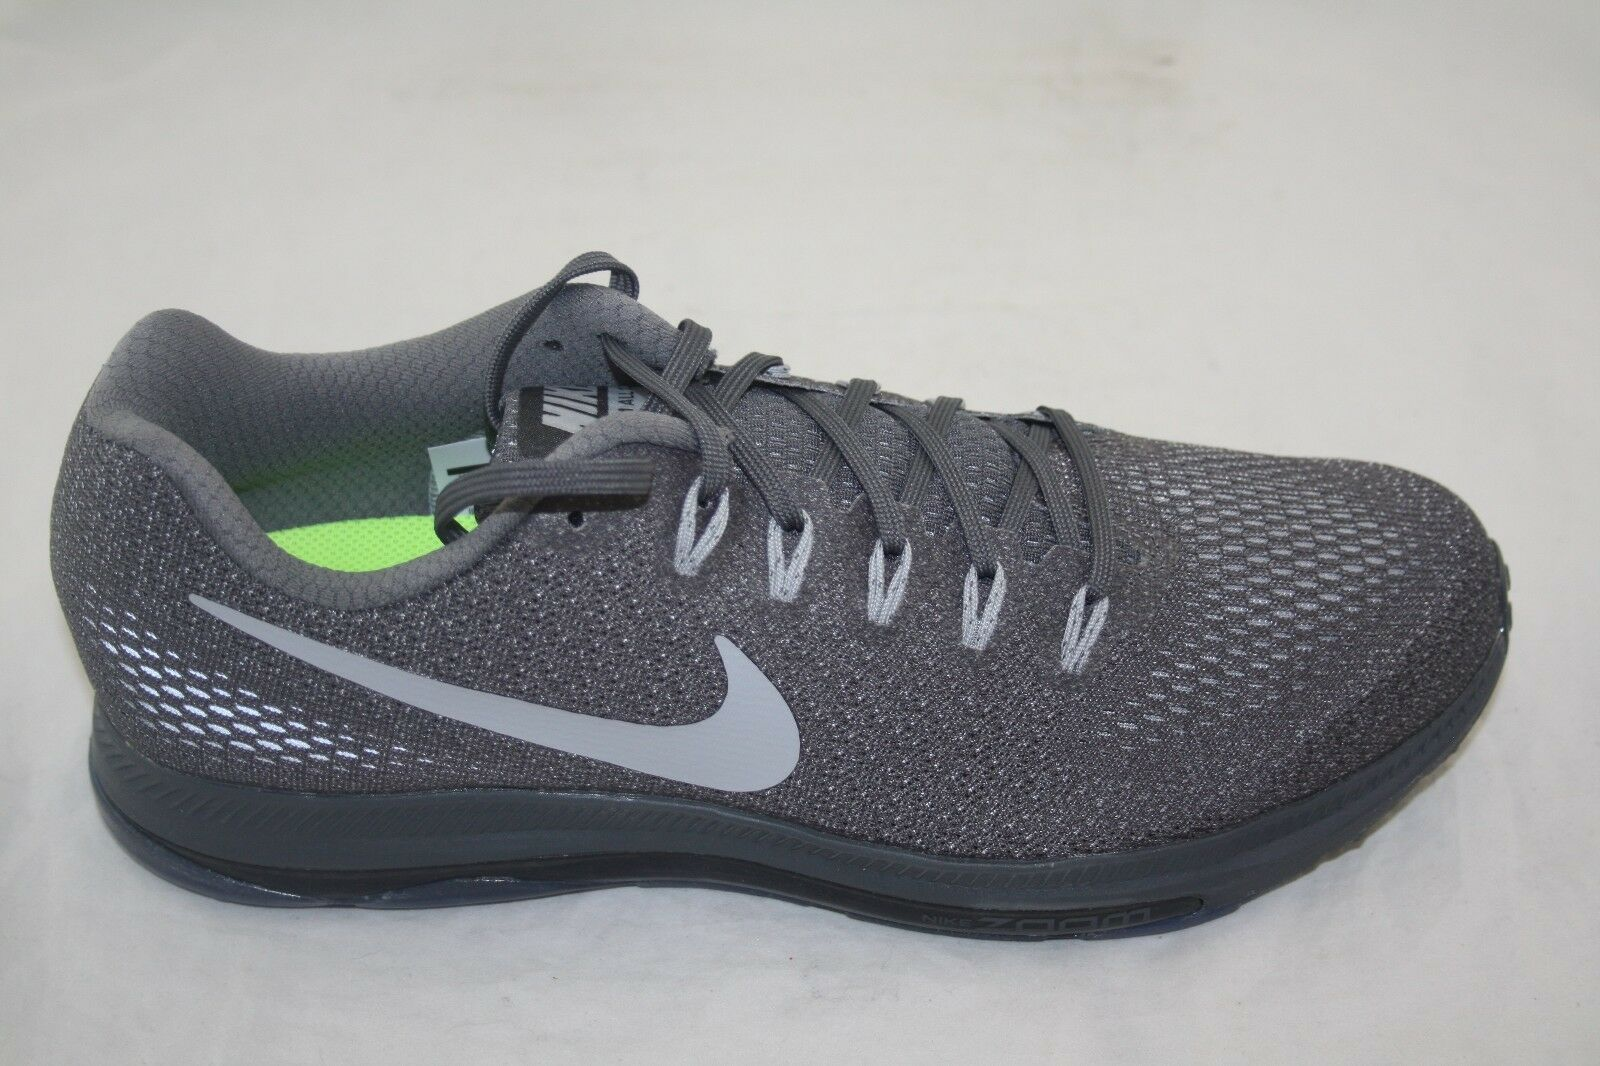 NIKE ZOOM ALL OUT LOW 878670-012 DARK GREY/WOLF GREY SIZE 11 Price reduction